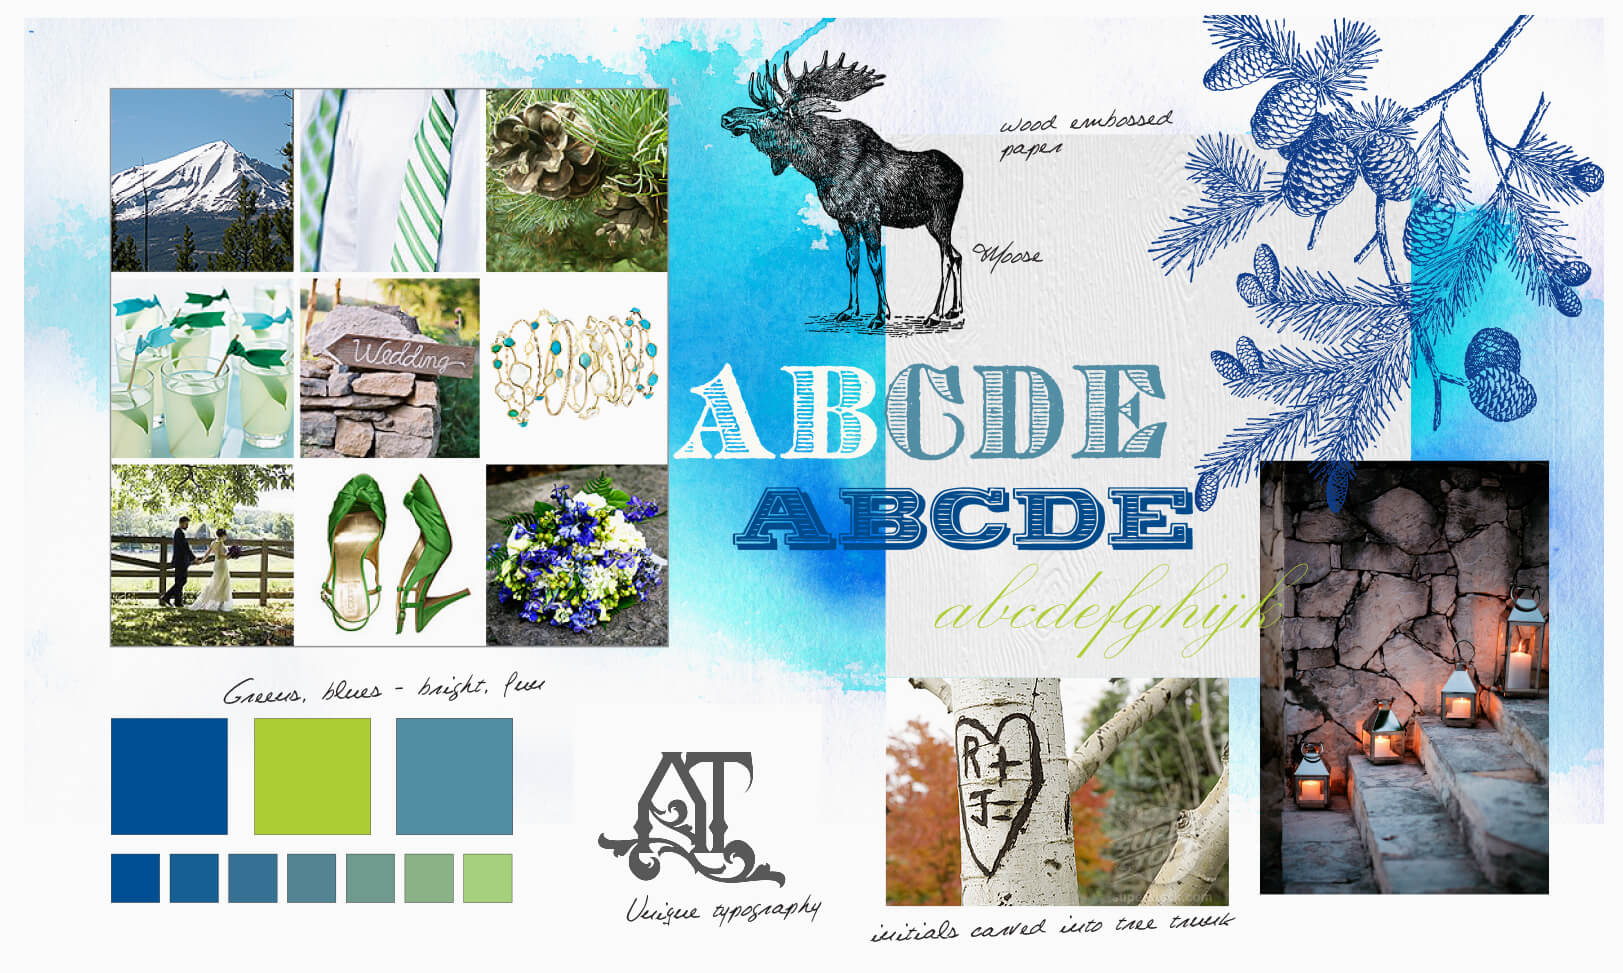 Vintage typography, pinecones and moose inspiration